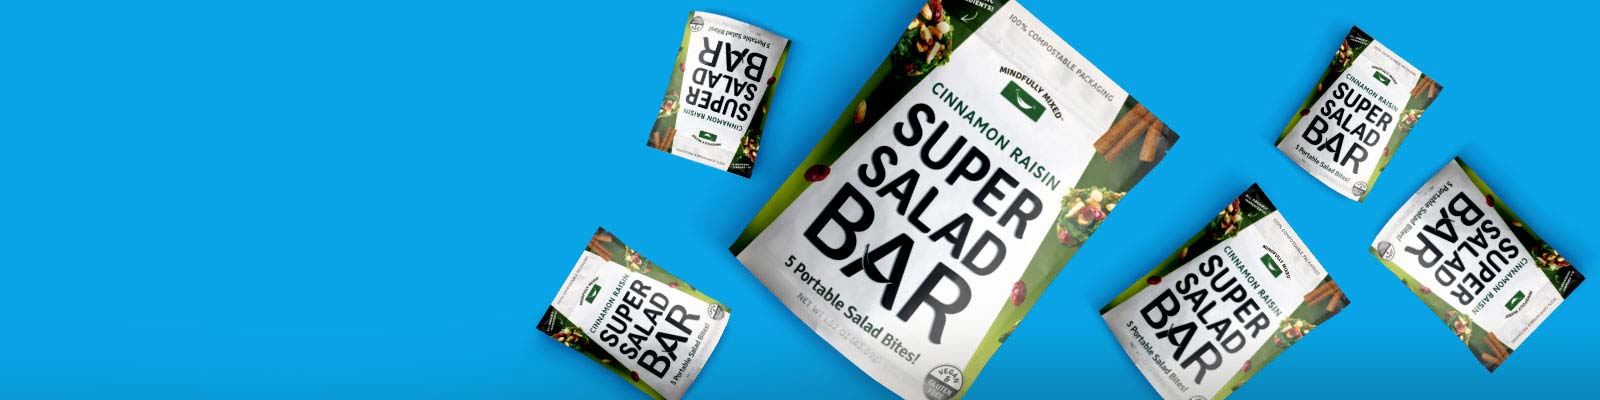 Shop - Super Salad Bar